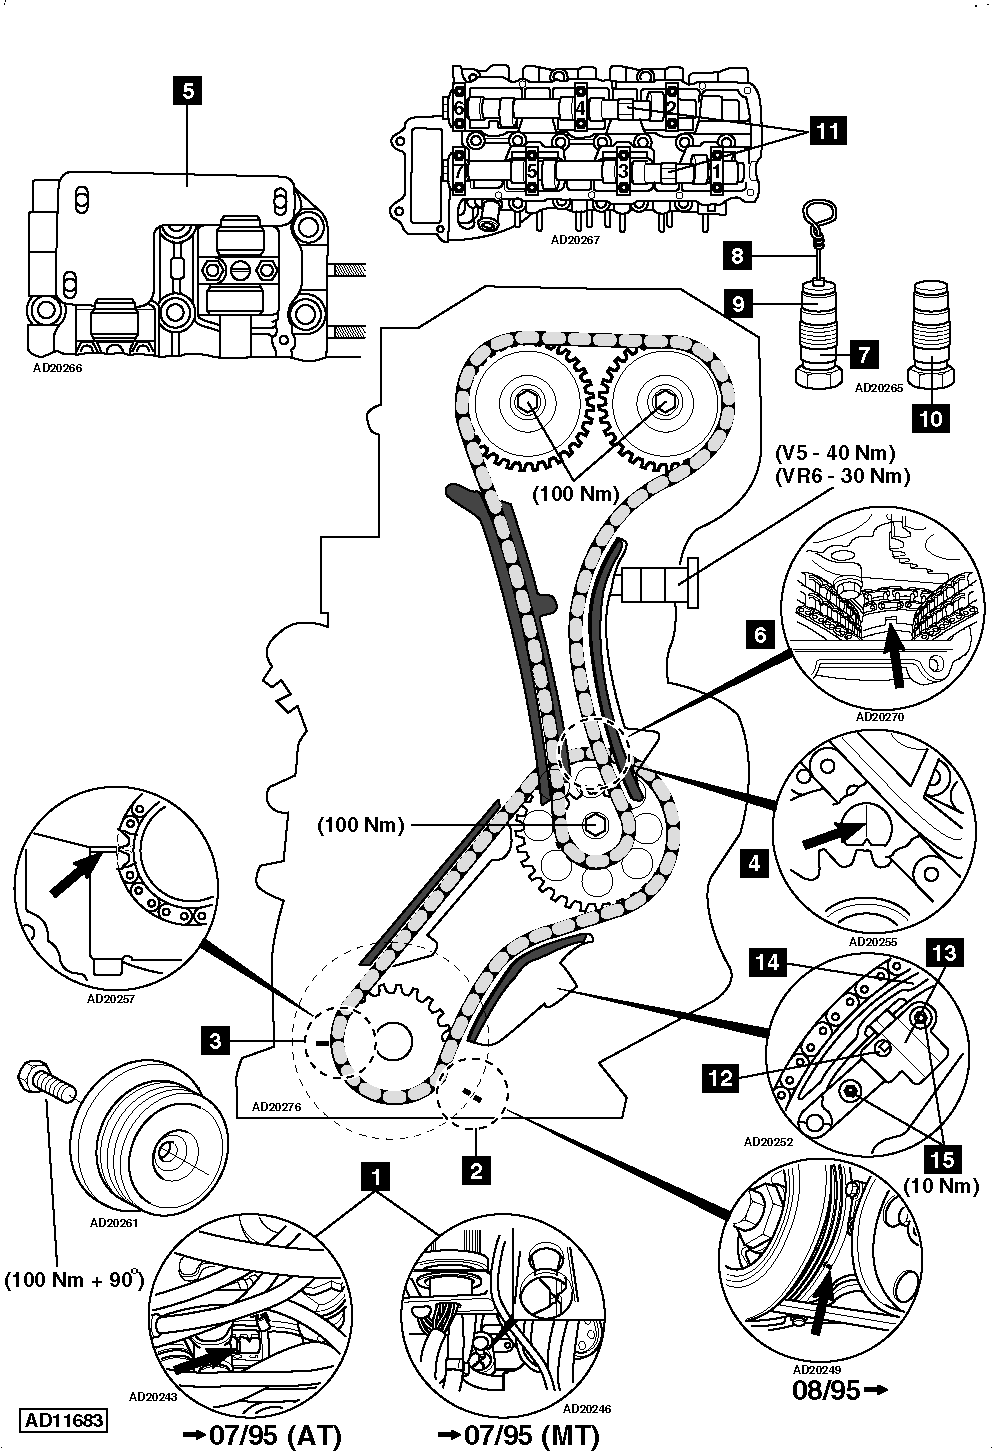 hight resolution of v5 engine diagram wiring library rh 16 skriptoase de golf v5 engine diagram vw golf v5 engine diagram